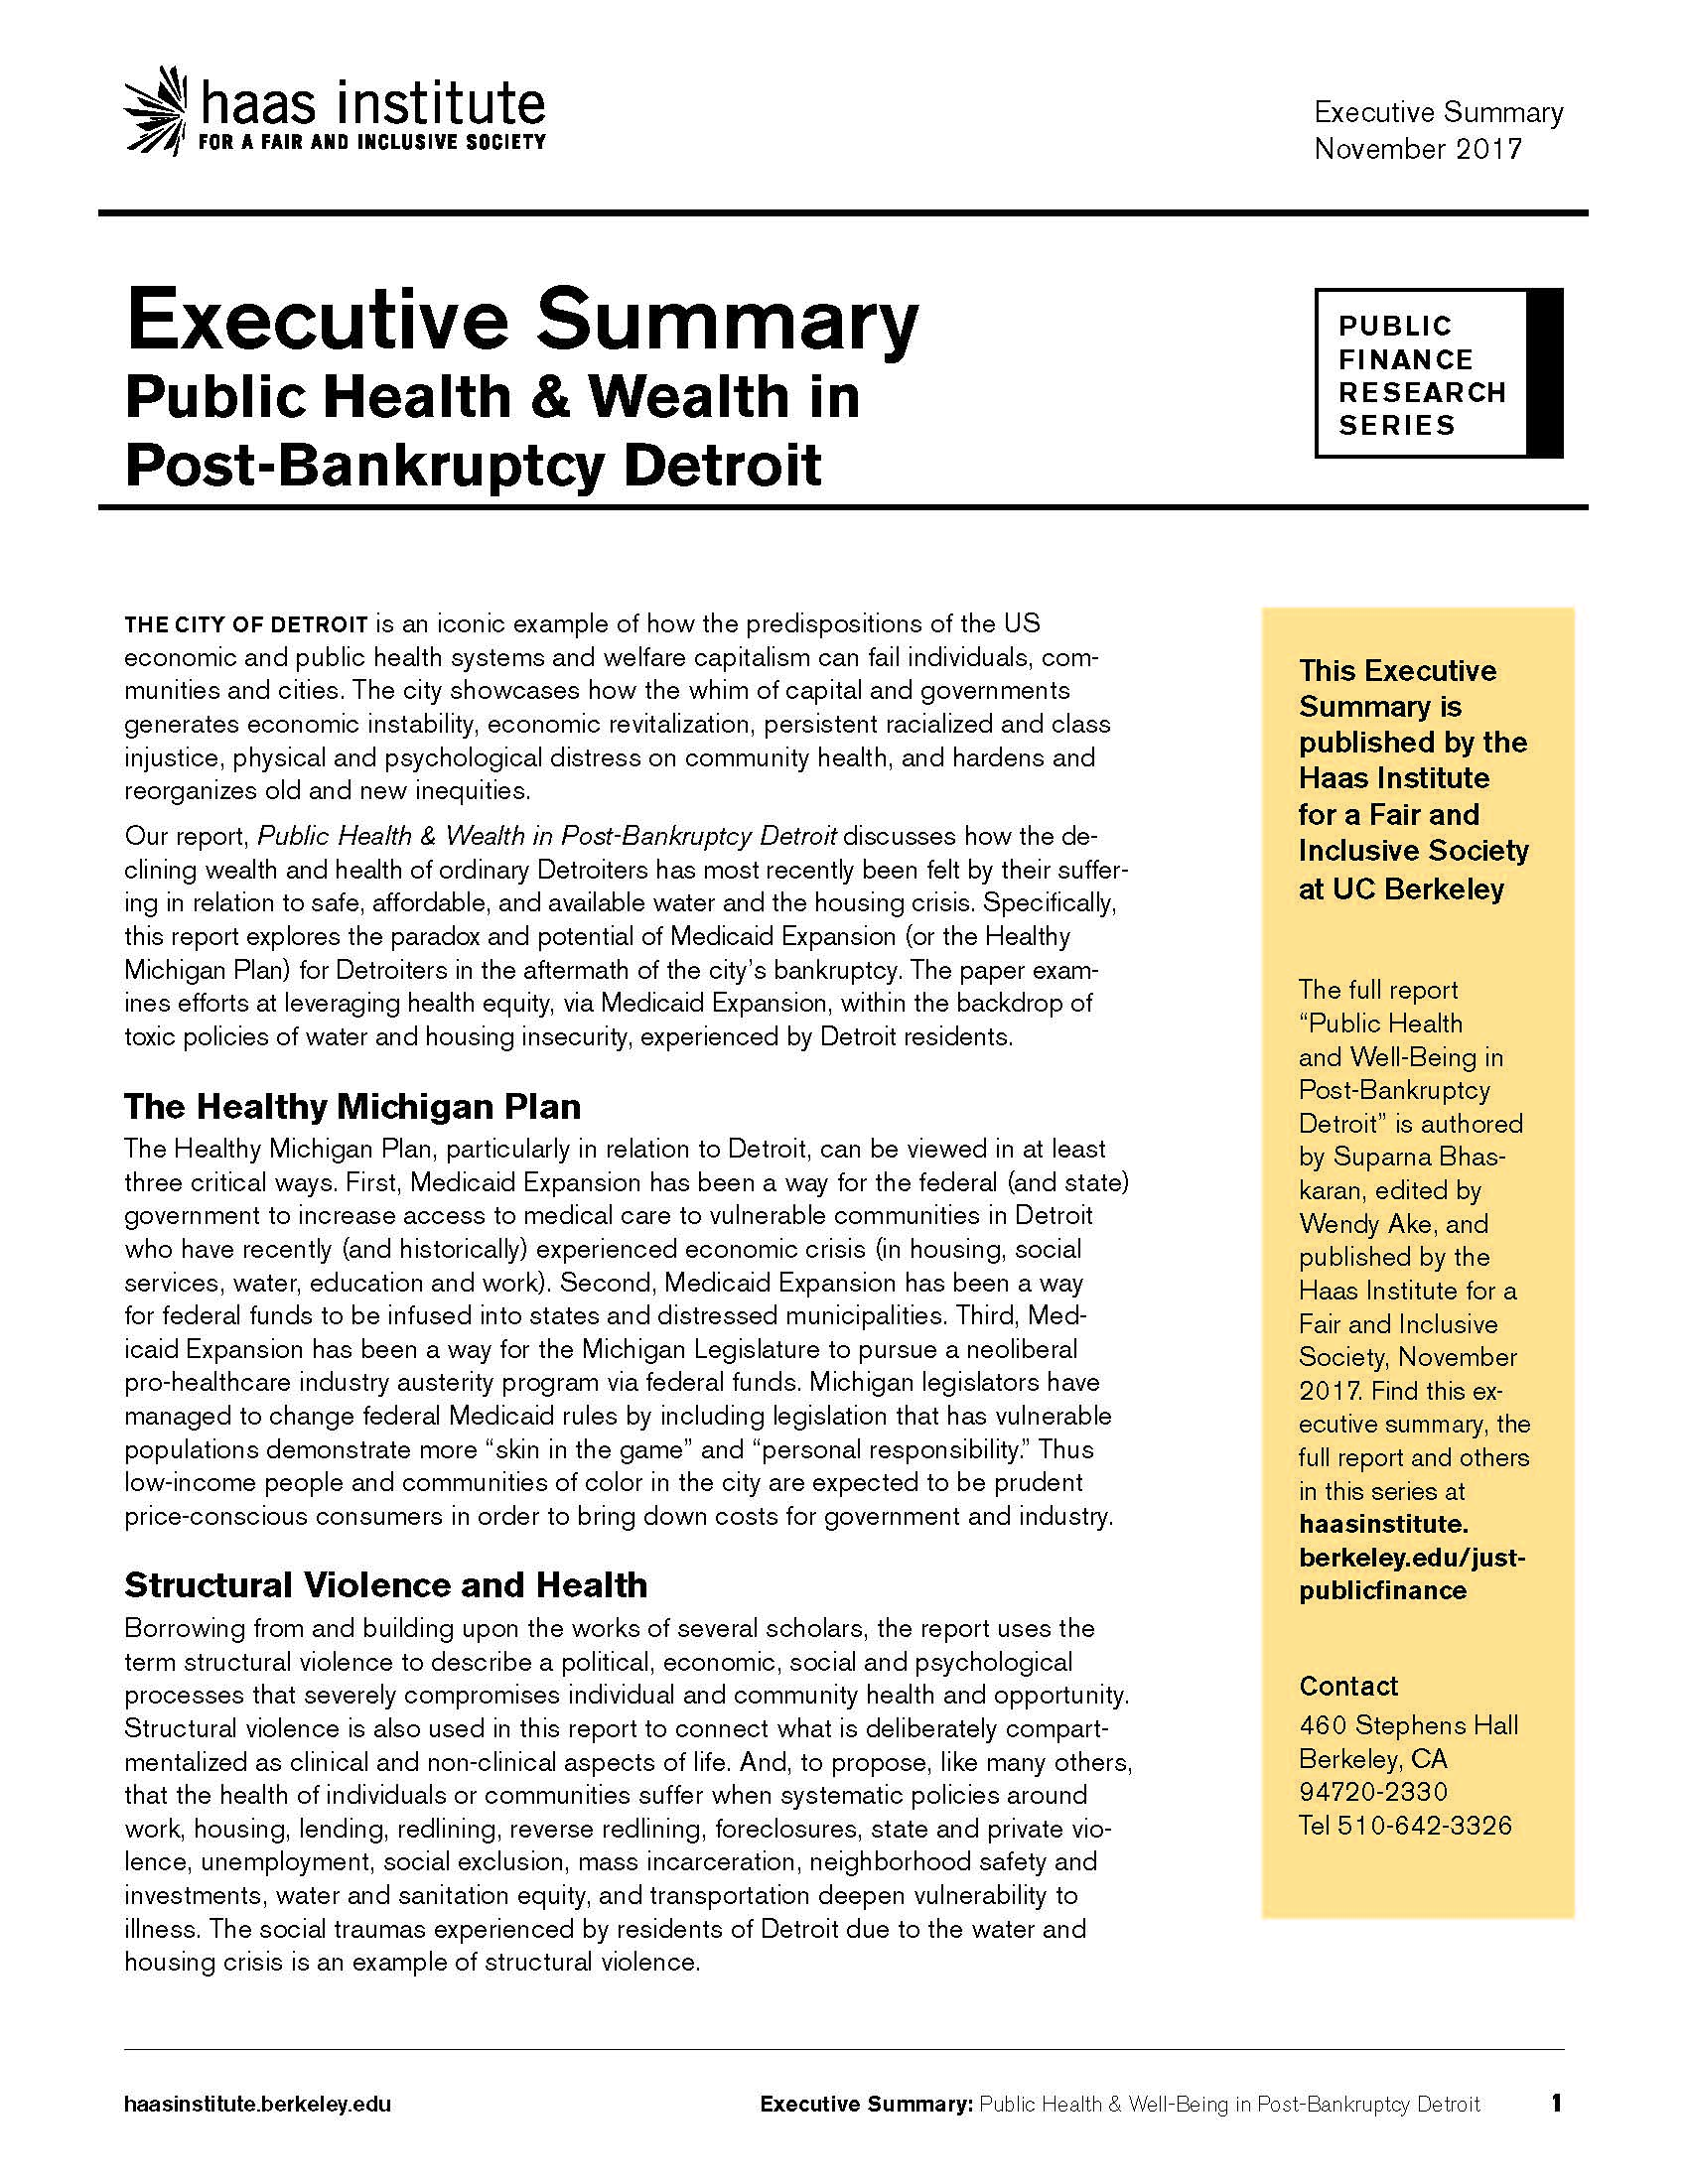 This An Executive Summary Of The Report U201cPublic Health And Well Being In  Post Bankruptcy Detroit,u201d Authored By Suparna Bhaskaran, Edited By Wendy  Ake, ...  An Executive Summary